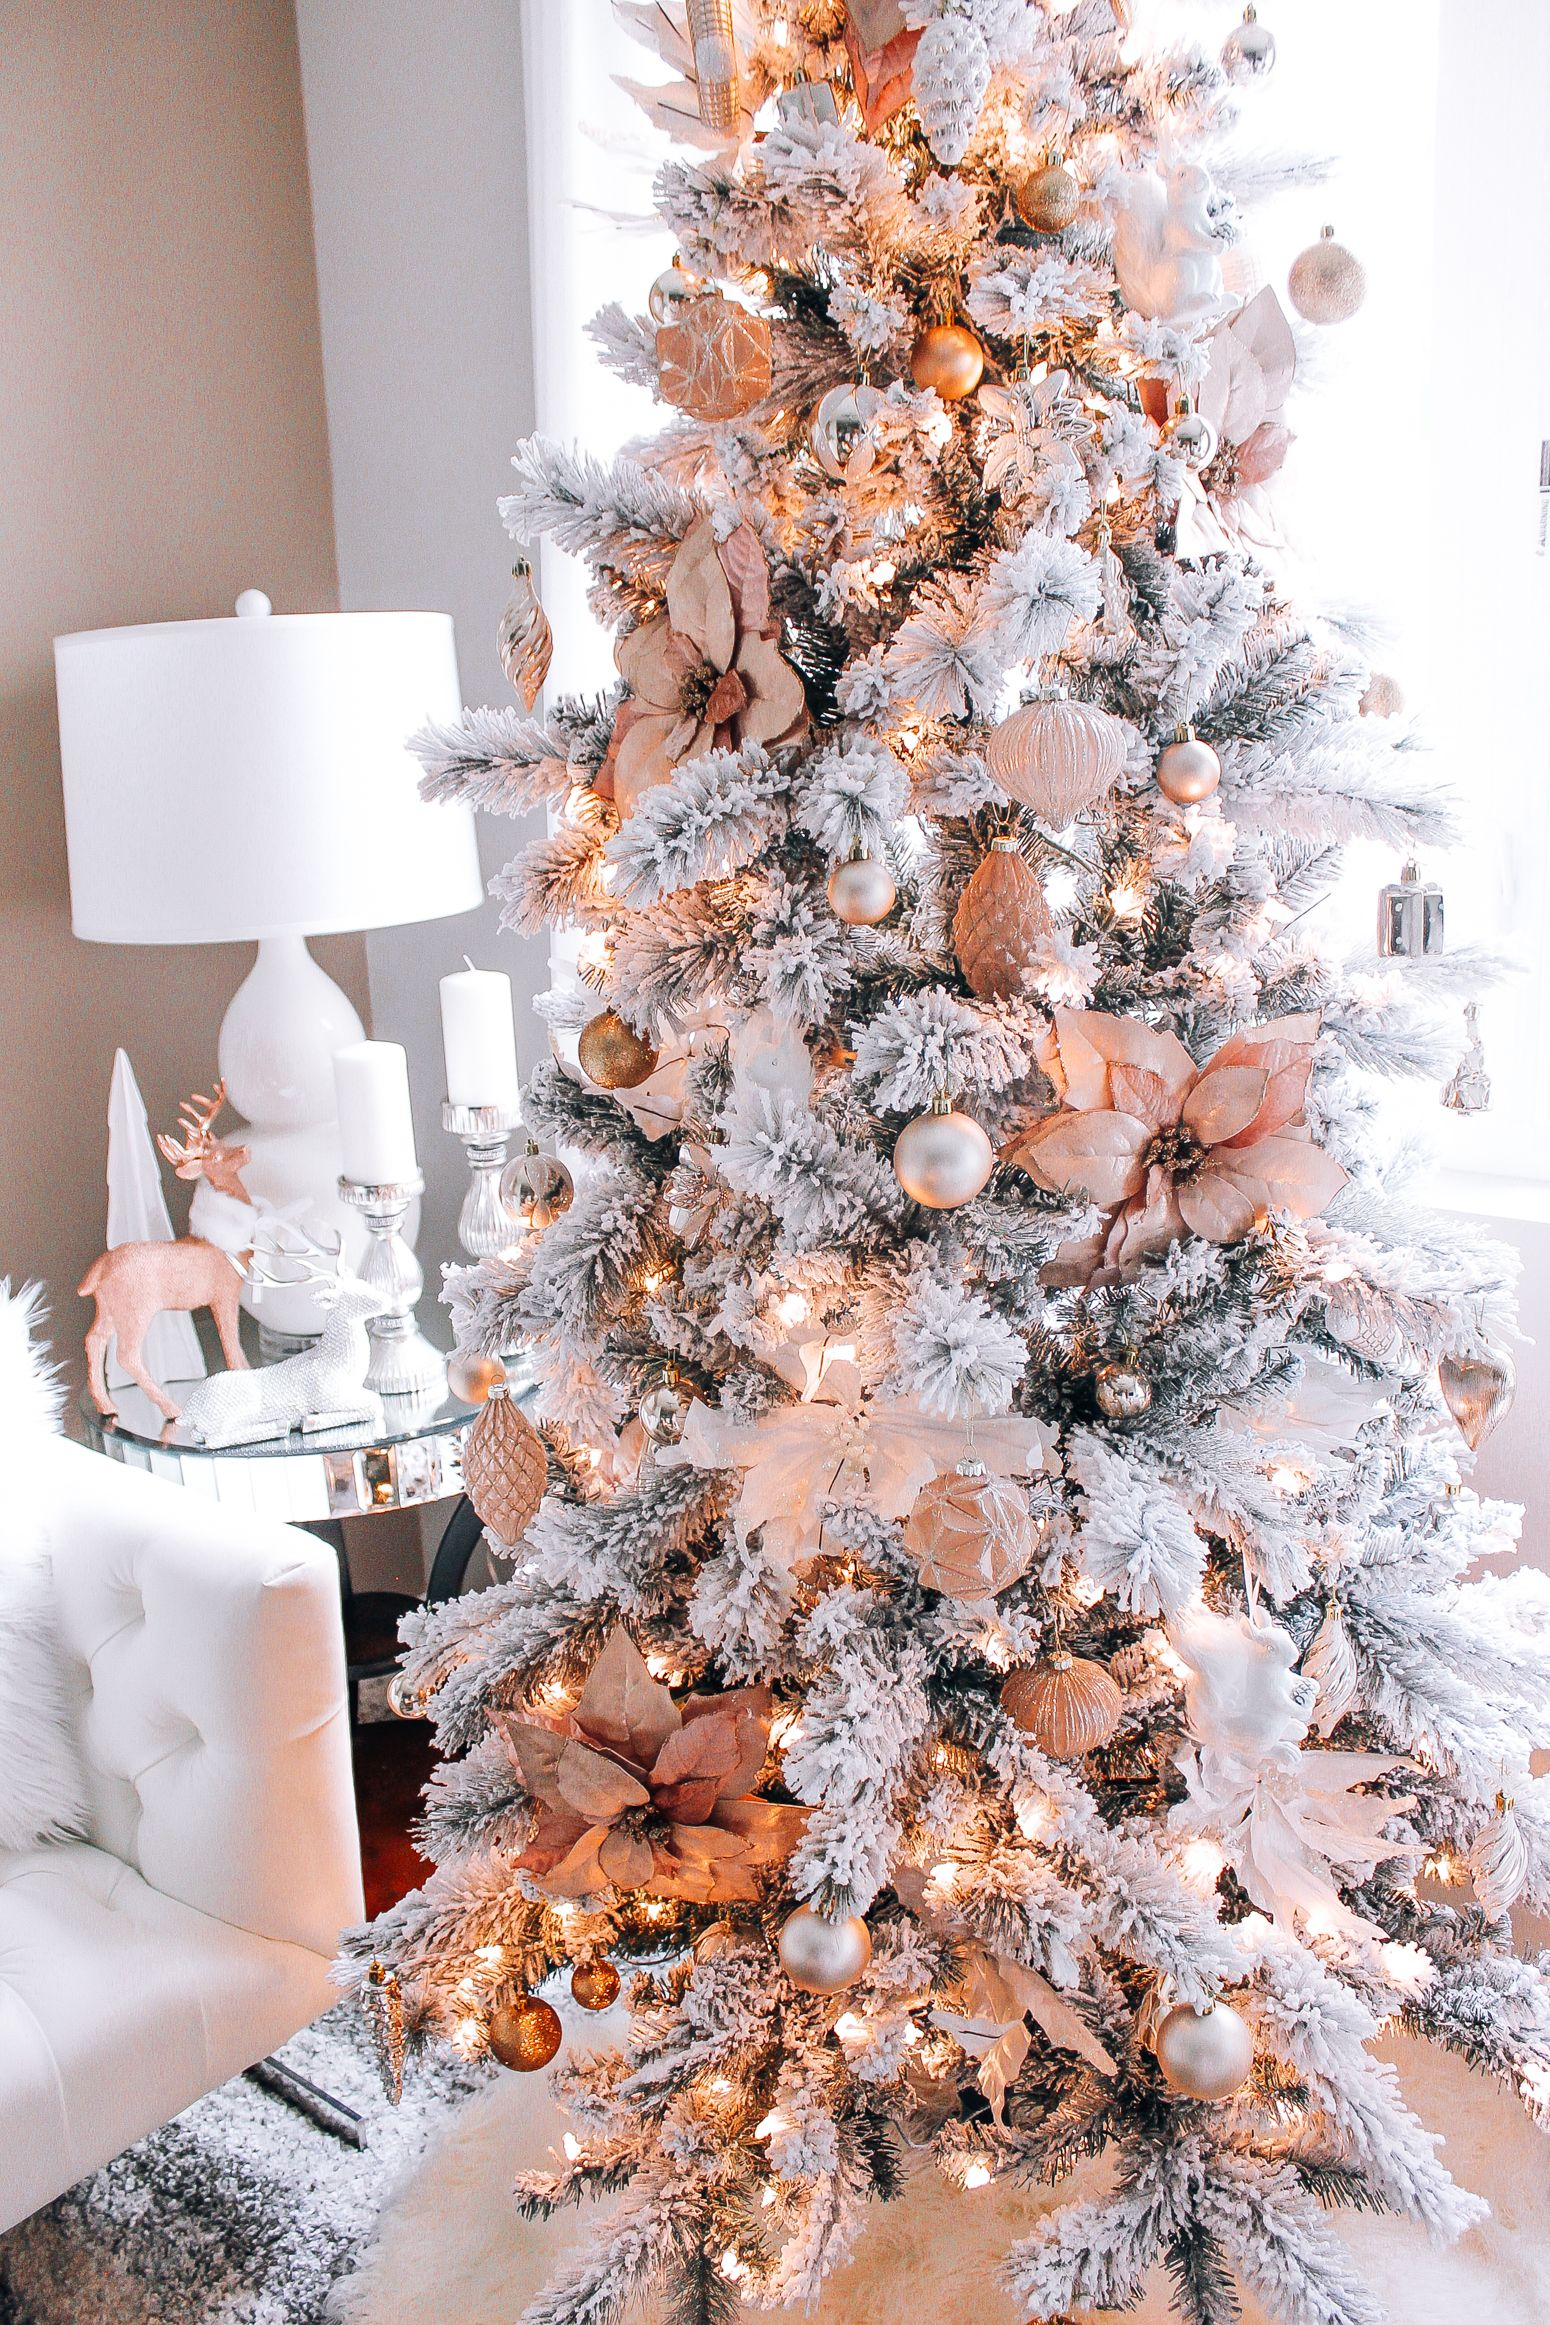 Blush Pink Rose Gold White Christmas Decor Gold Christmas Tree Decorations Rose Gold Christmas Tree Gold Christmas Decorations